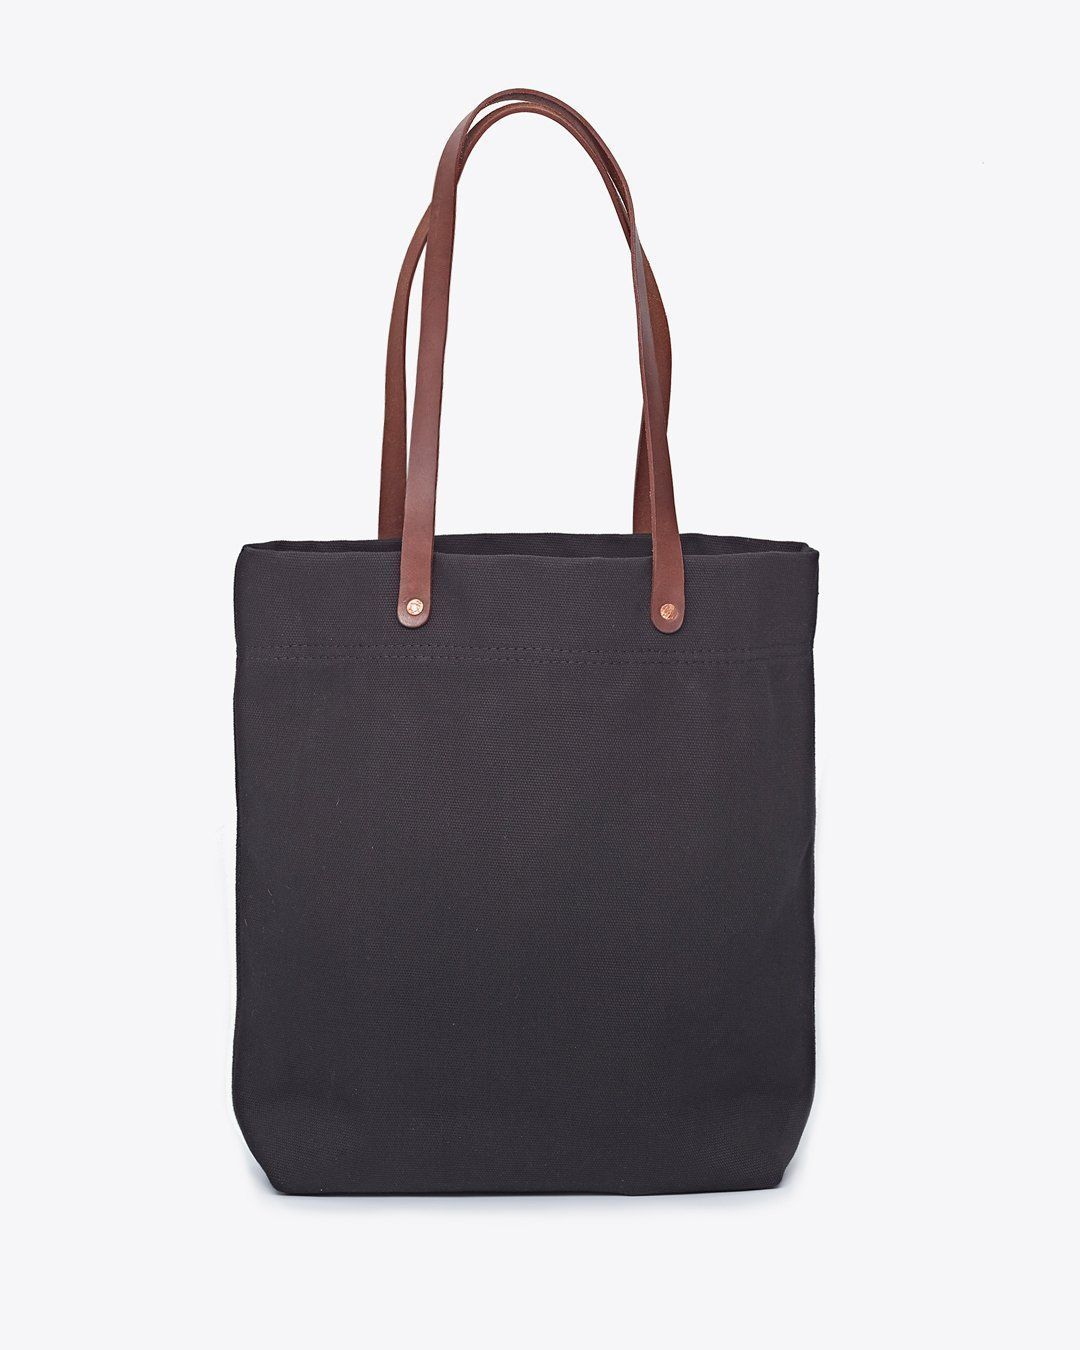 545baacfaf7 Nisolo Canvas Tote Black